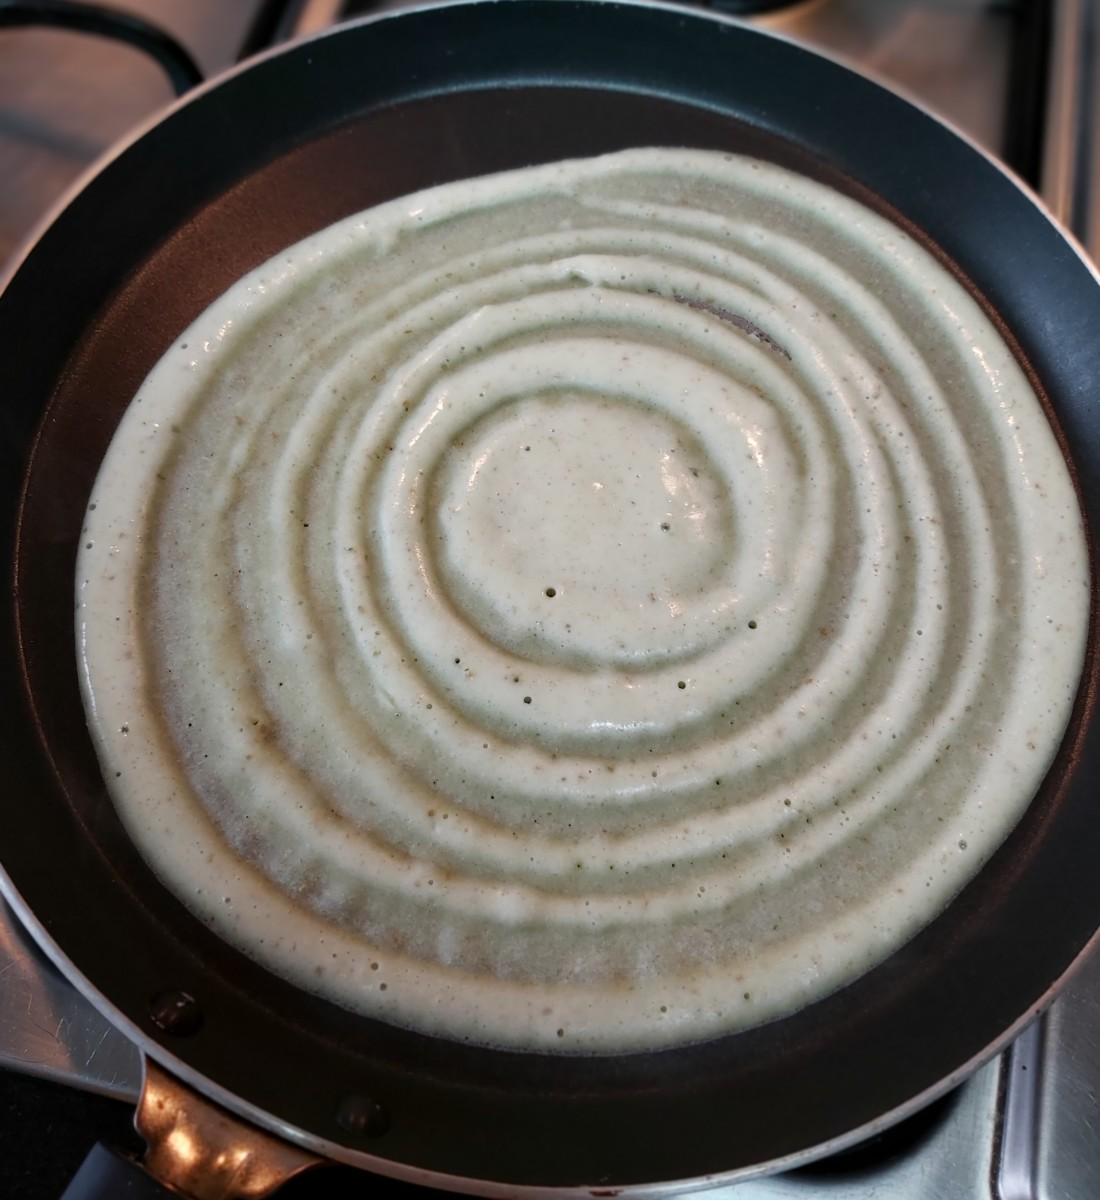 Pour a ladleful of batter in the center of the pan. Gently spread the batter in a circular motion, forming a thin dosa.